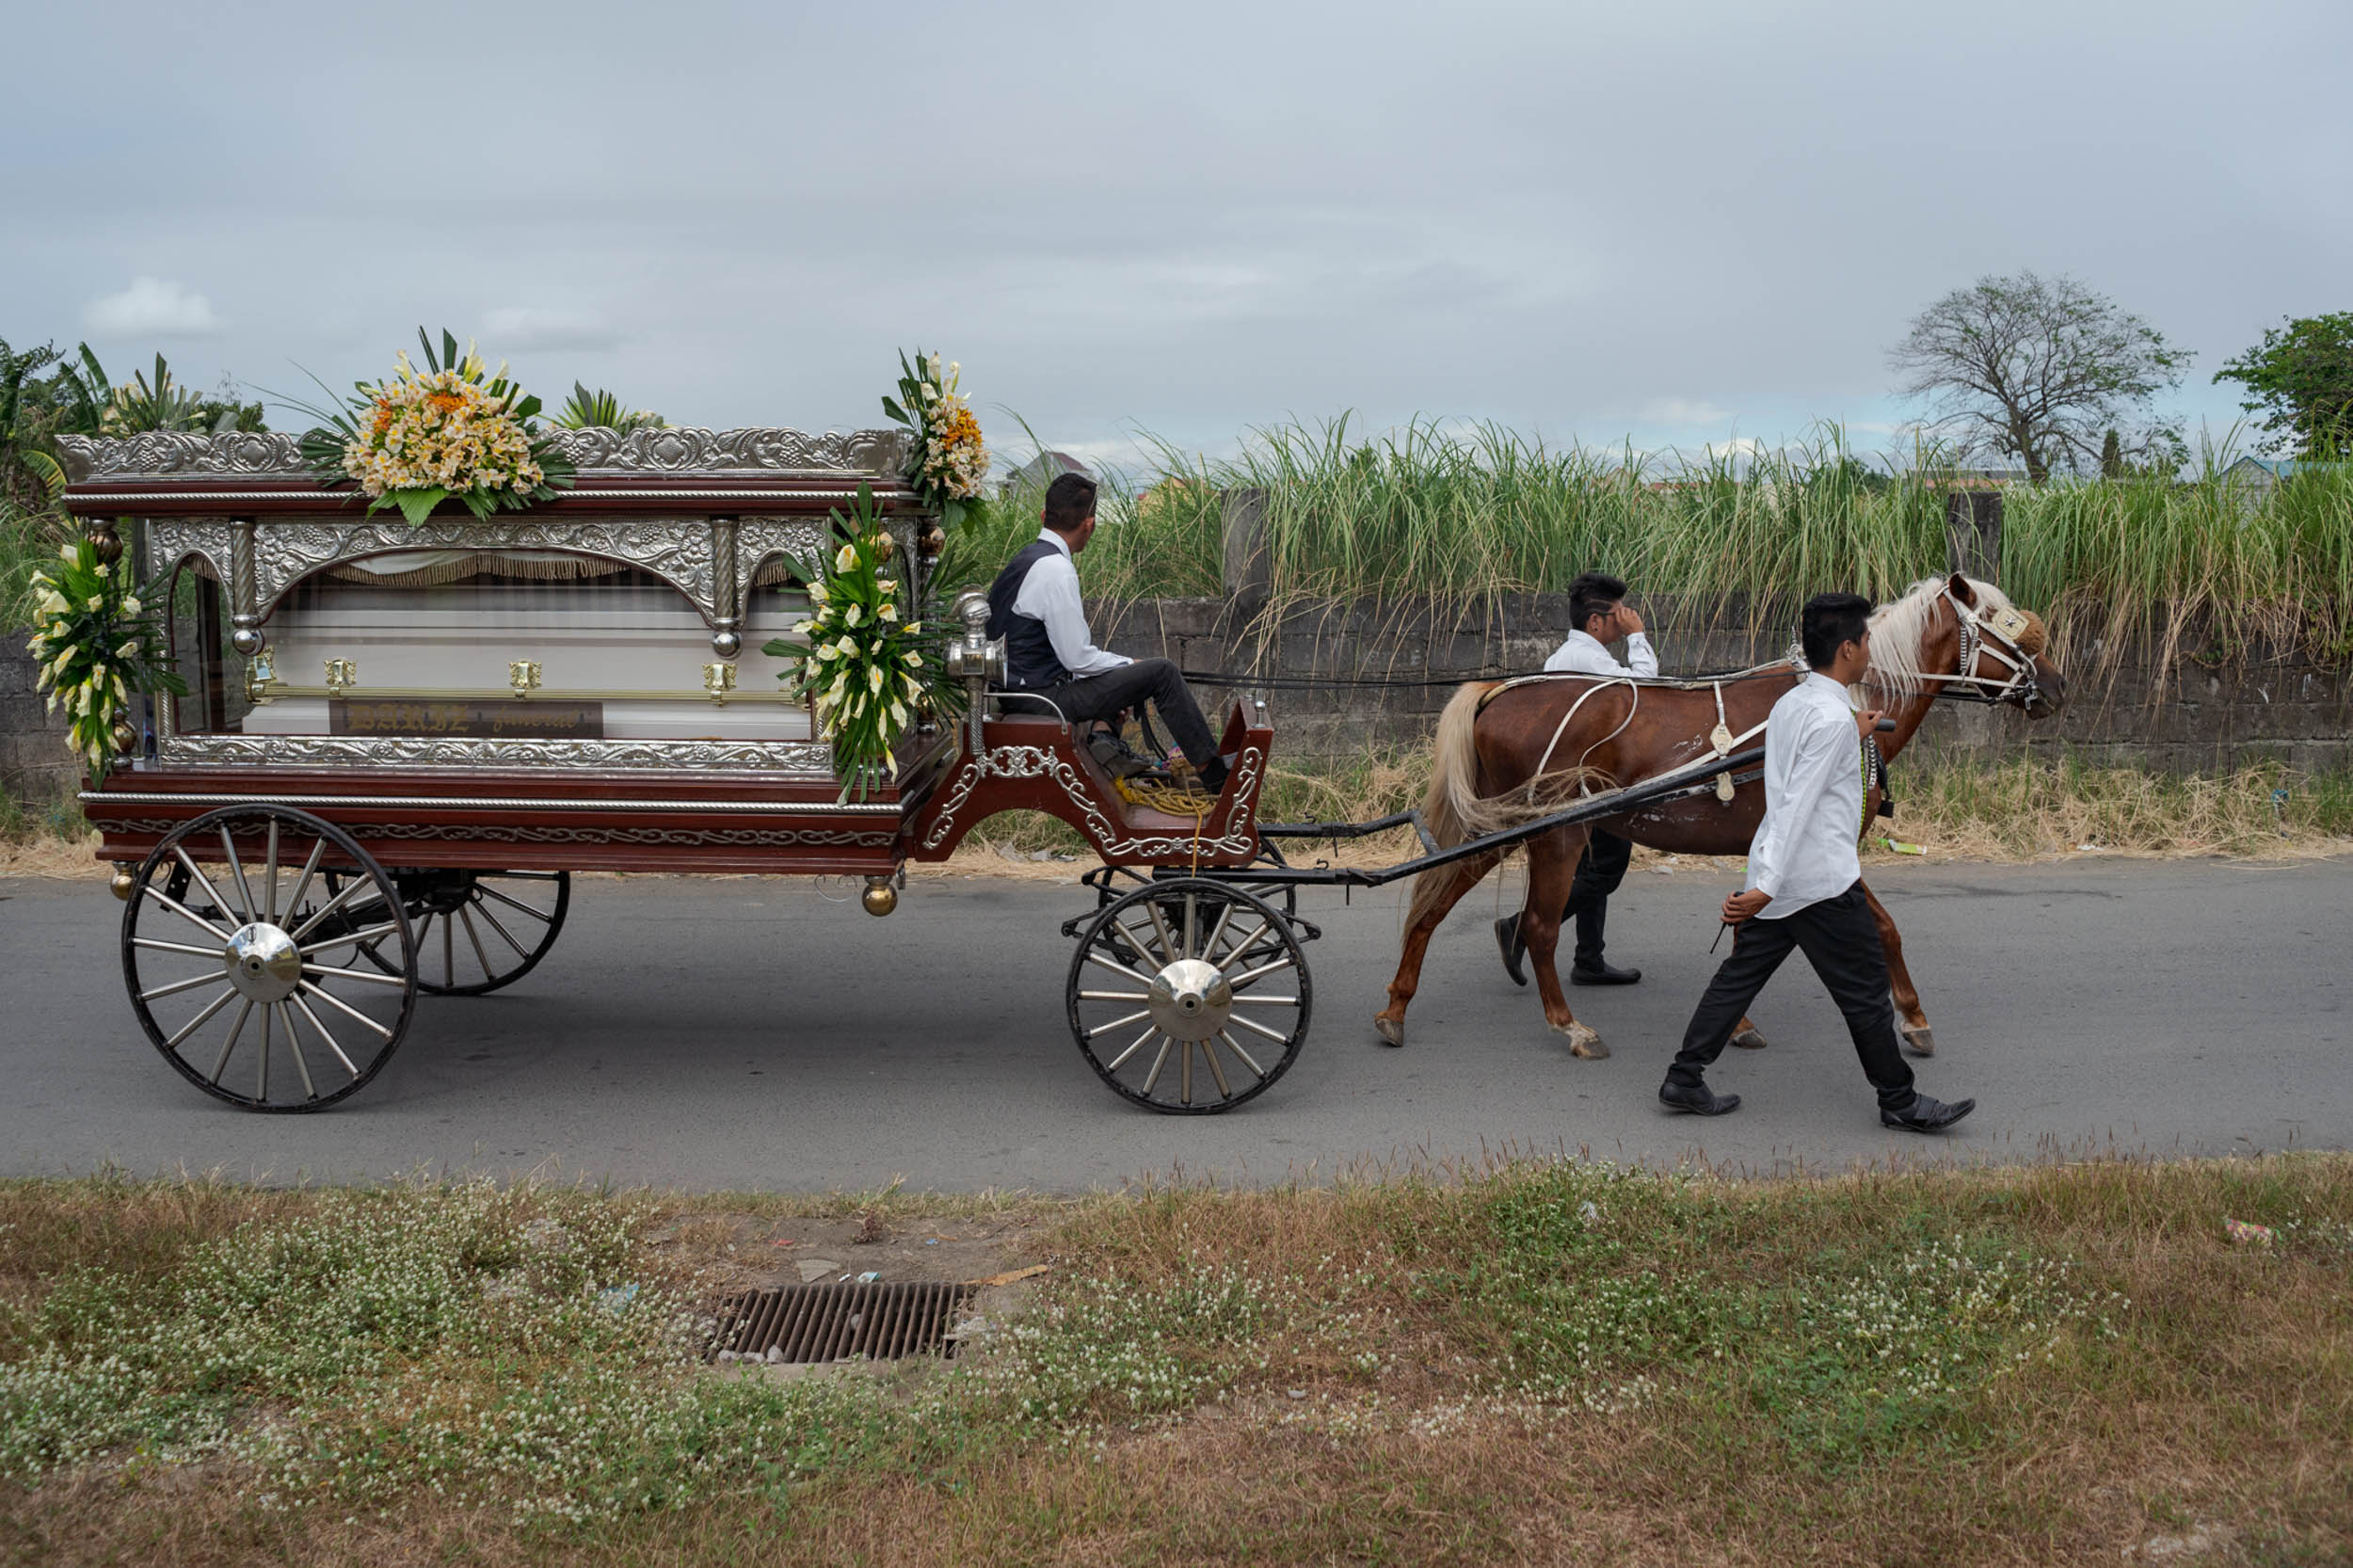 The remains of Jessica Catiis are taken to the cemetery in a horse-drawn carriage. Her mother, Evelyn, and